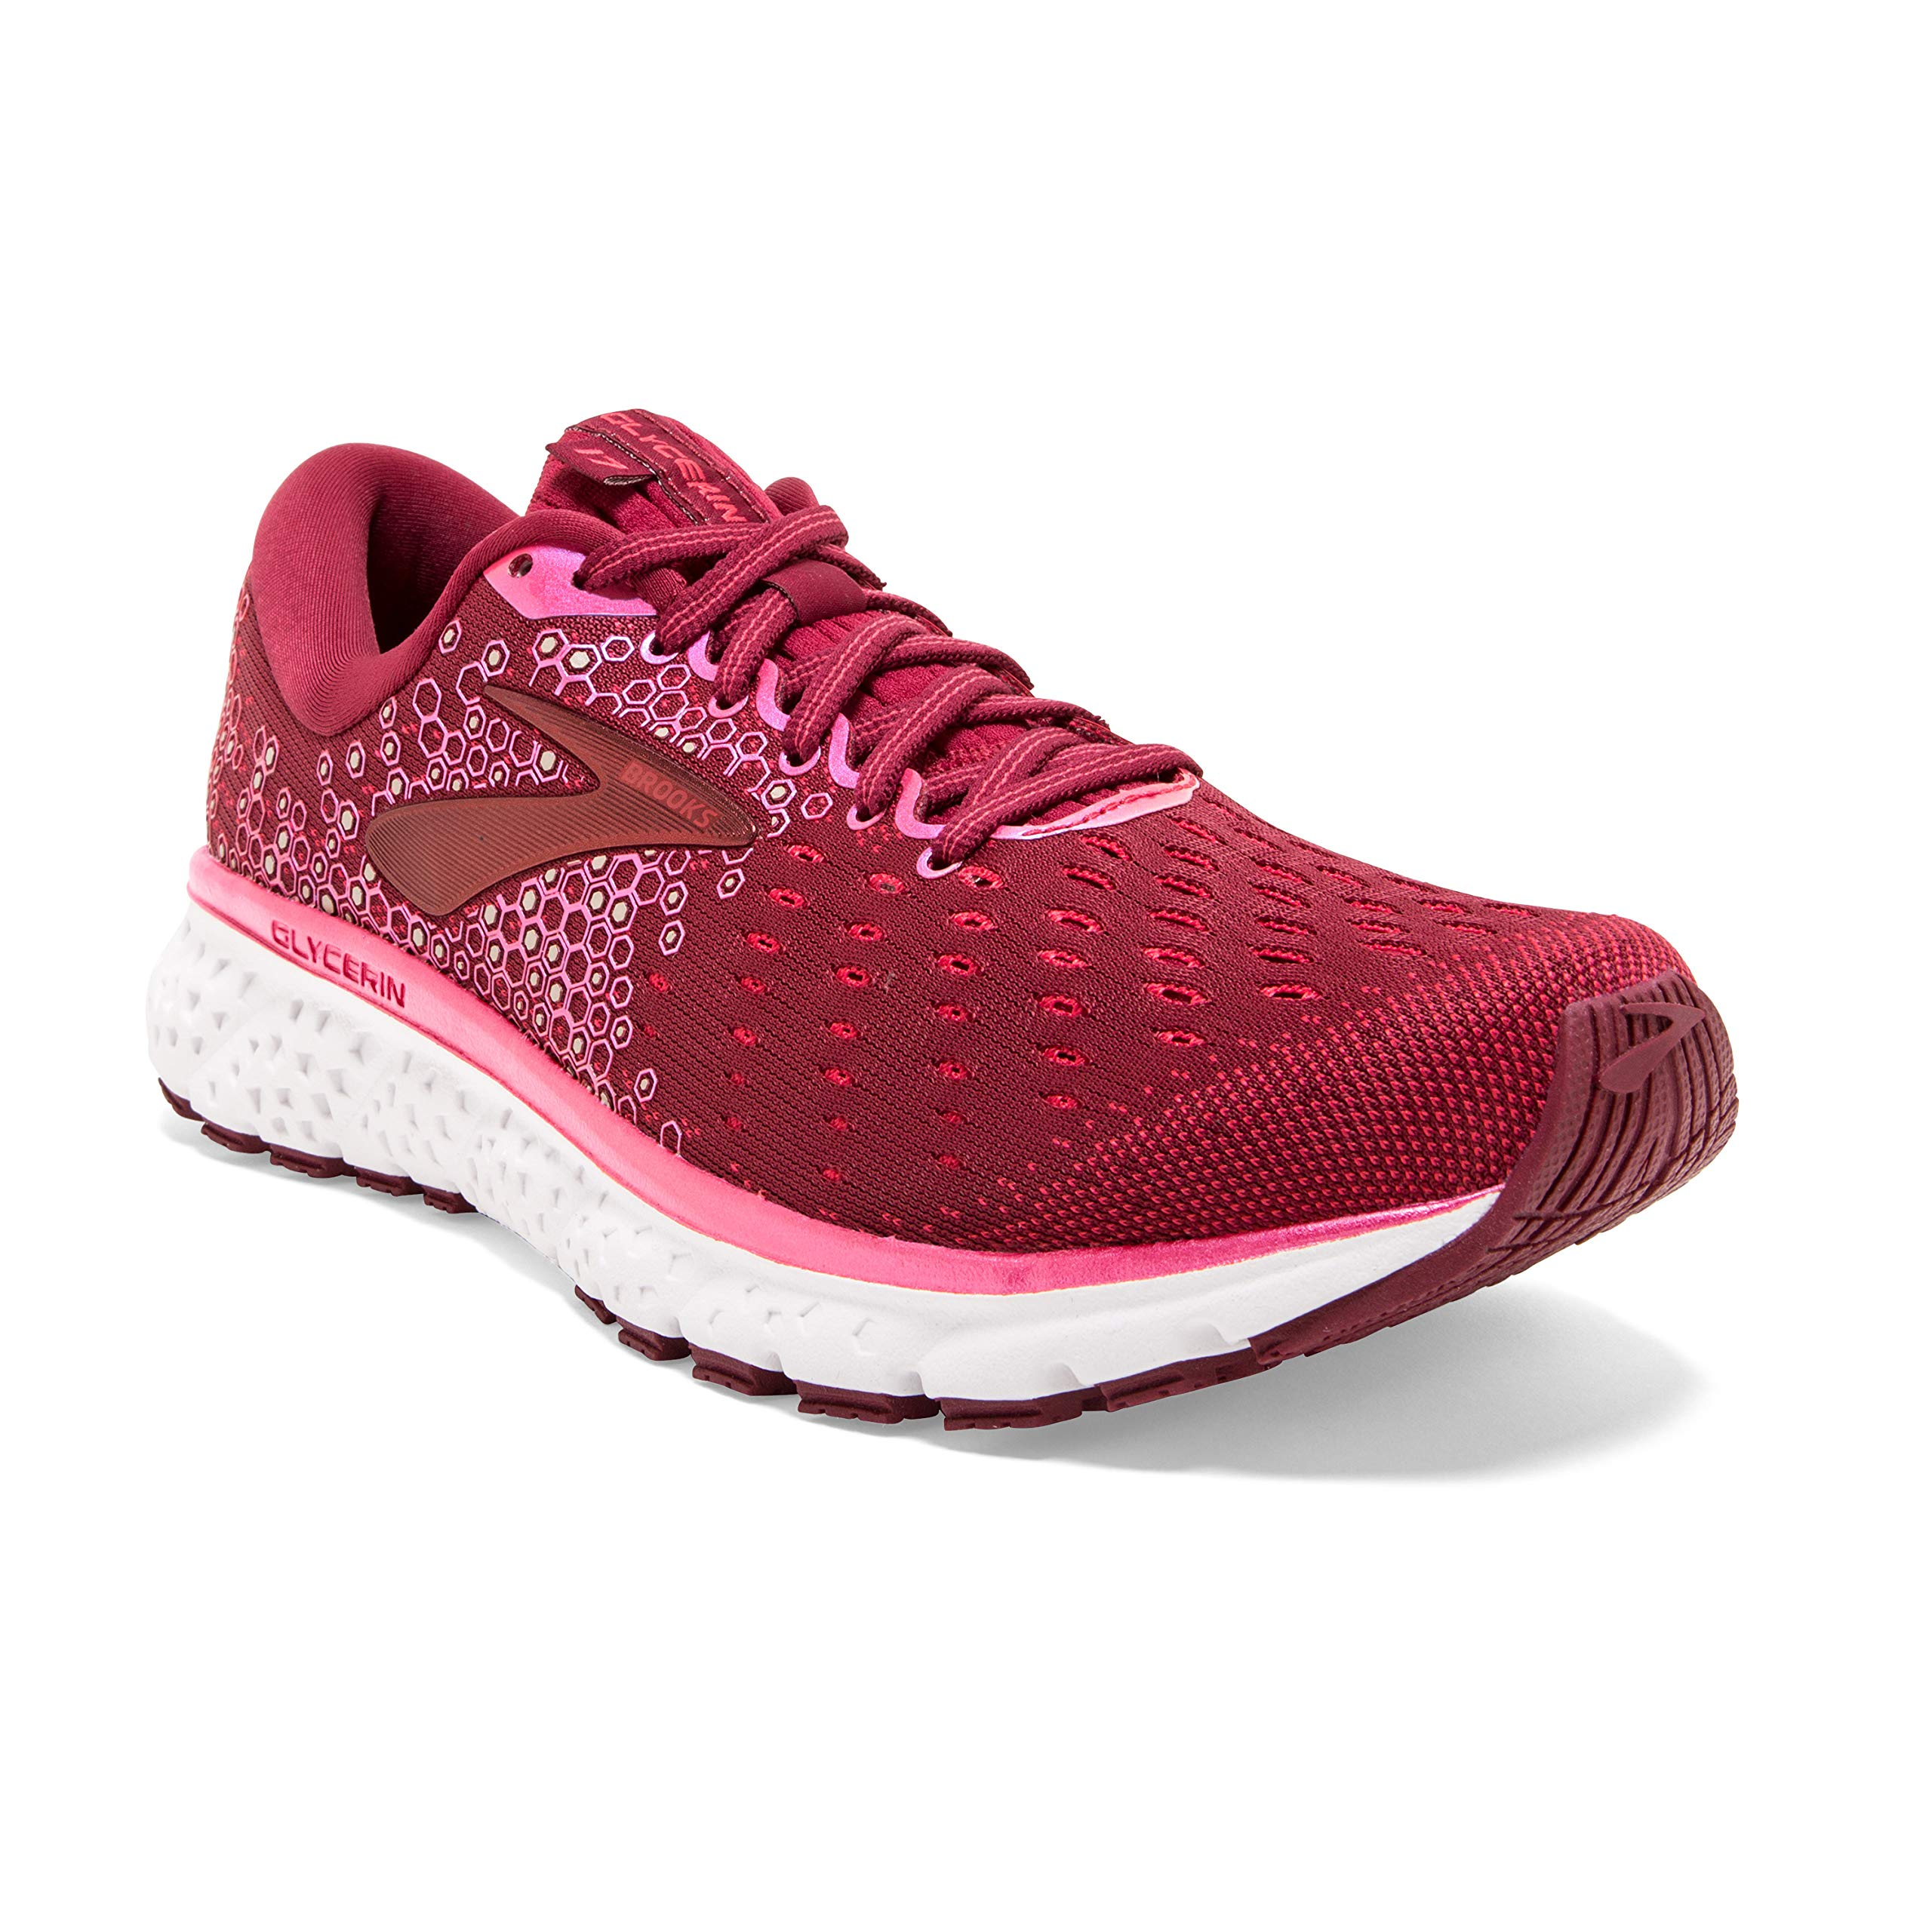 Brooks Womens Glycerin 17 Running Shoe - Rumba Red/Teaberry/Gold - B - 8.0 by Brooks